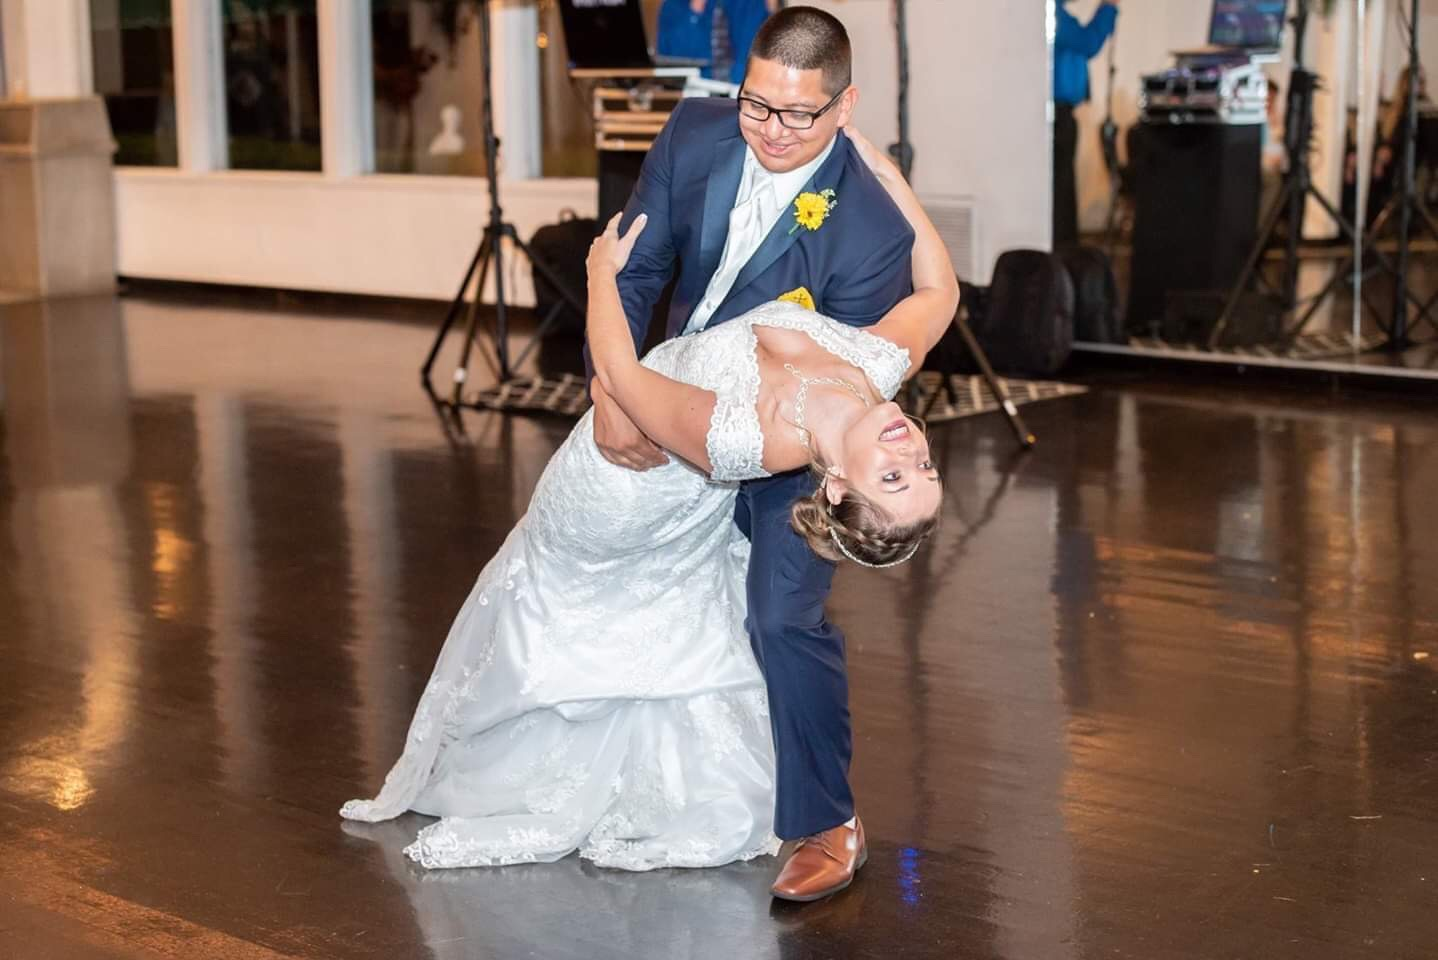 Bride & Groom - Figuring out your dance can truly help you take on your wedding day with confidence and ease! We want to look back on your anniversary years from now and think wow that dance was totally us!